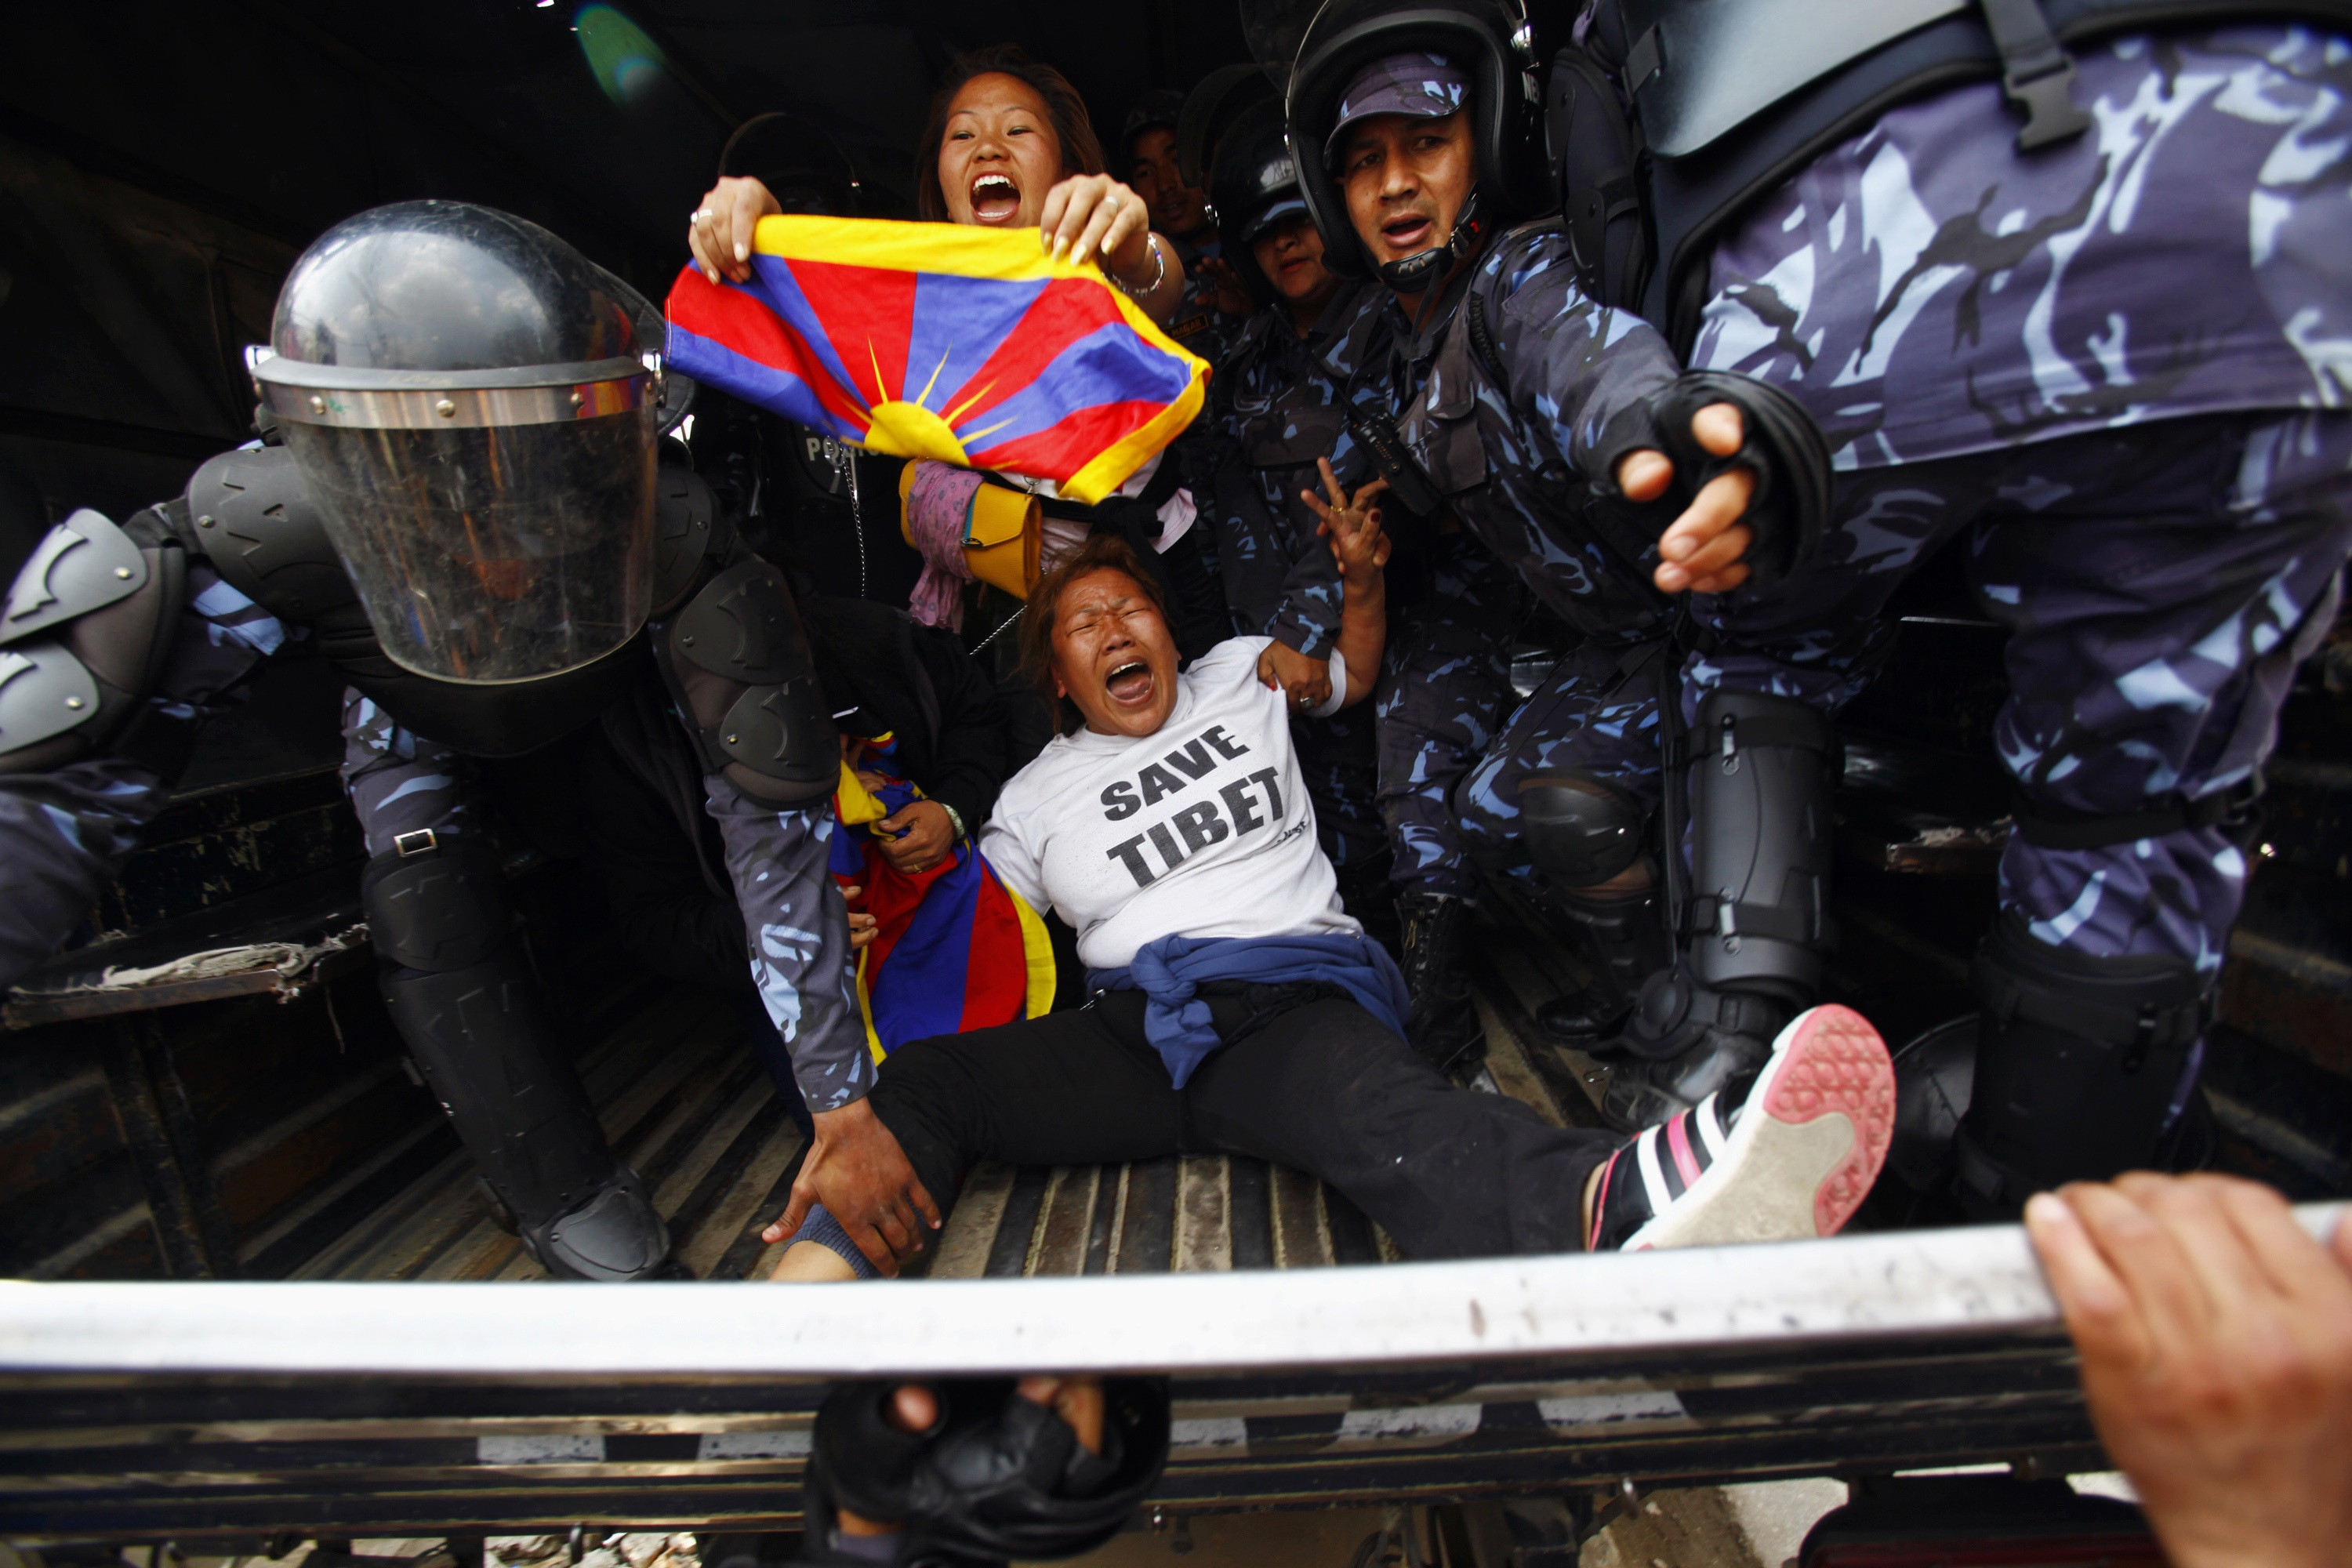 Nepali policemen detain exiled Tibetans participating in a protest outside the Chinese embassy in Kathmandu on March 10, 2014